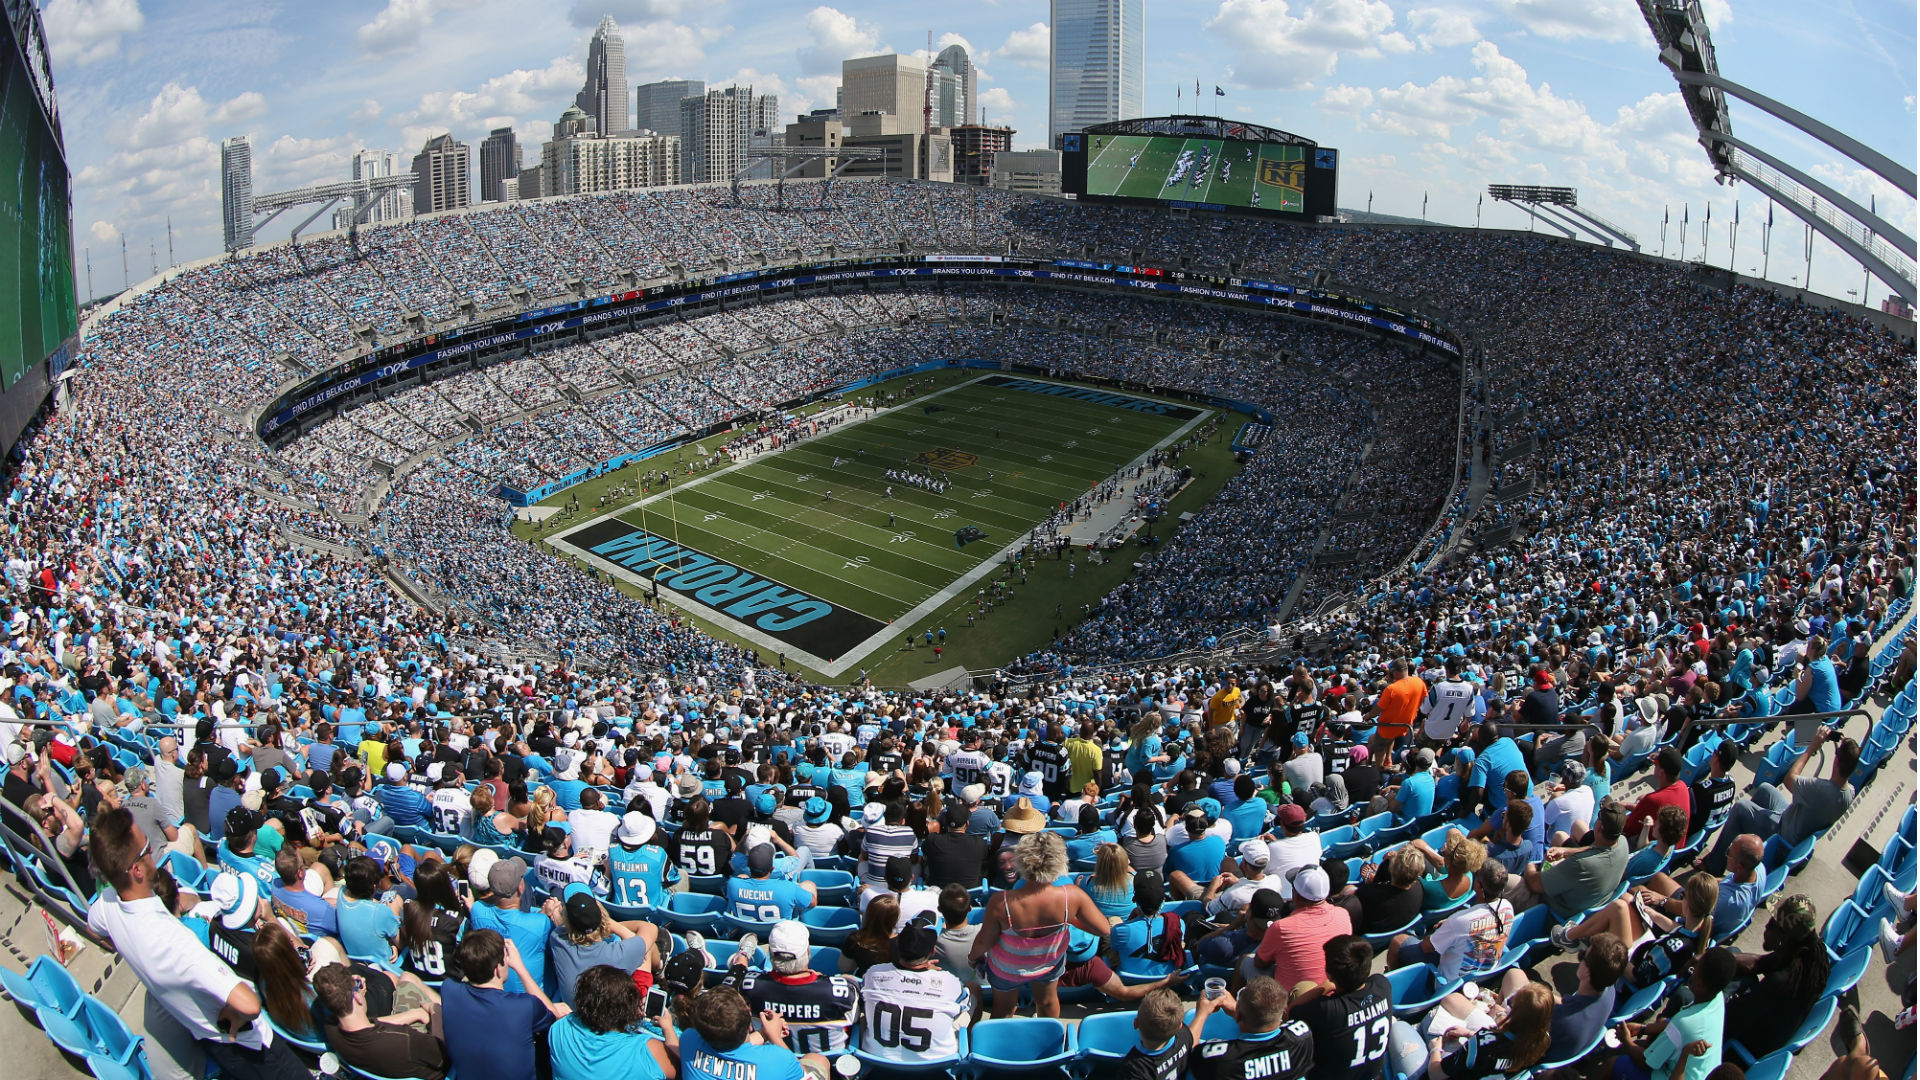 Panthers' Bidding Price Has Reached Record $2.5 Billion